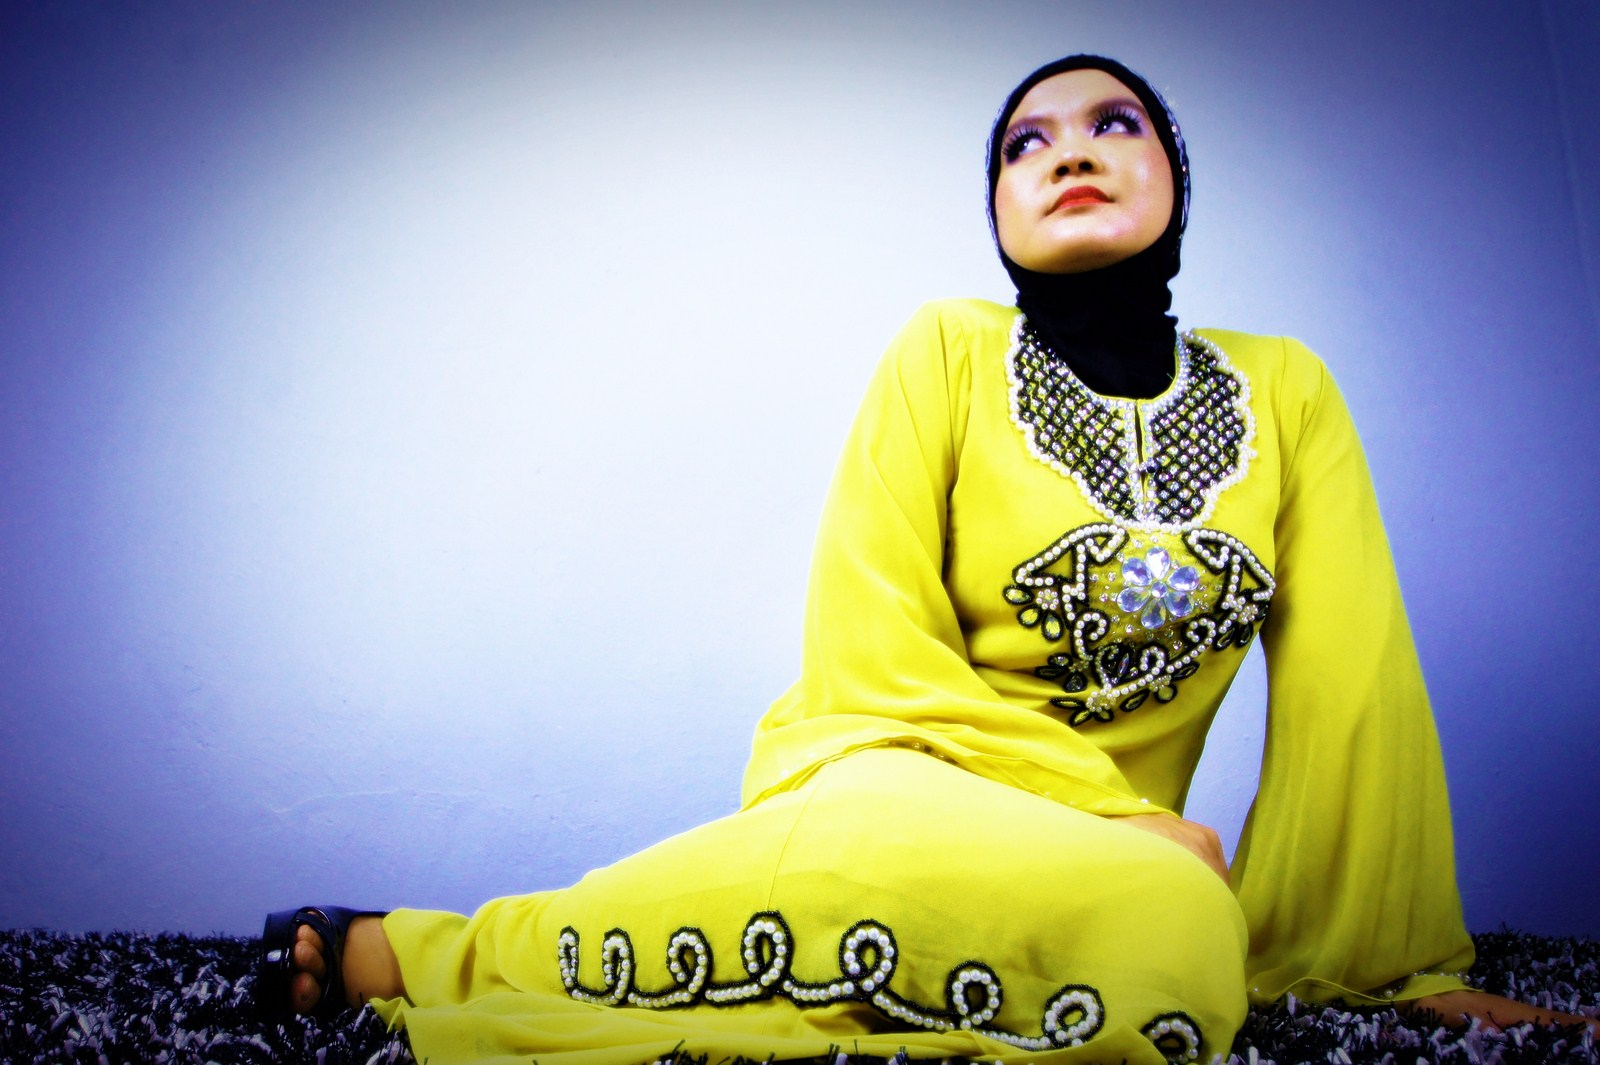 Premium Beautiful by Madeena Yahya